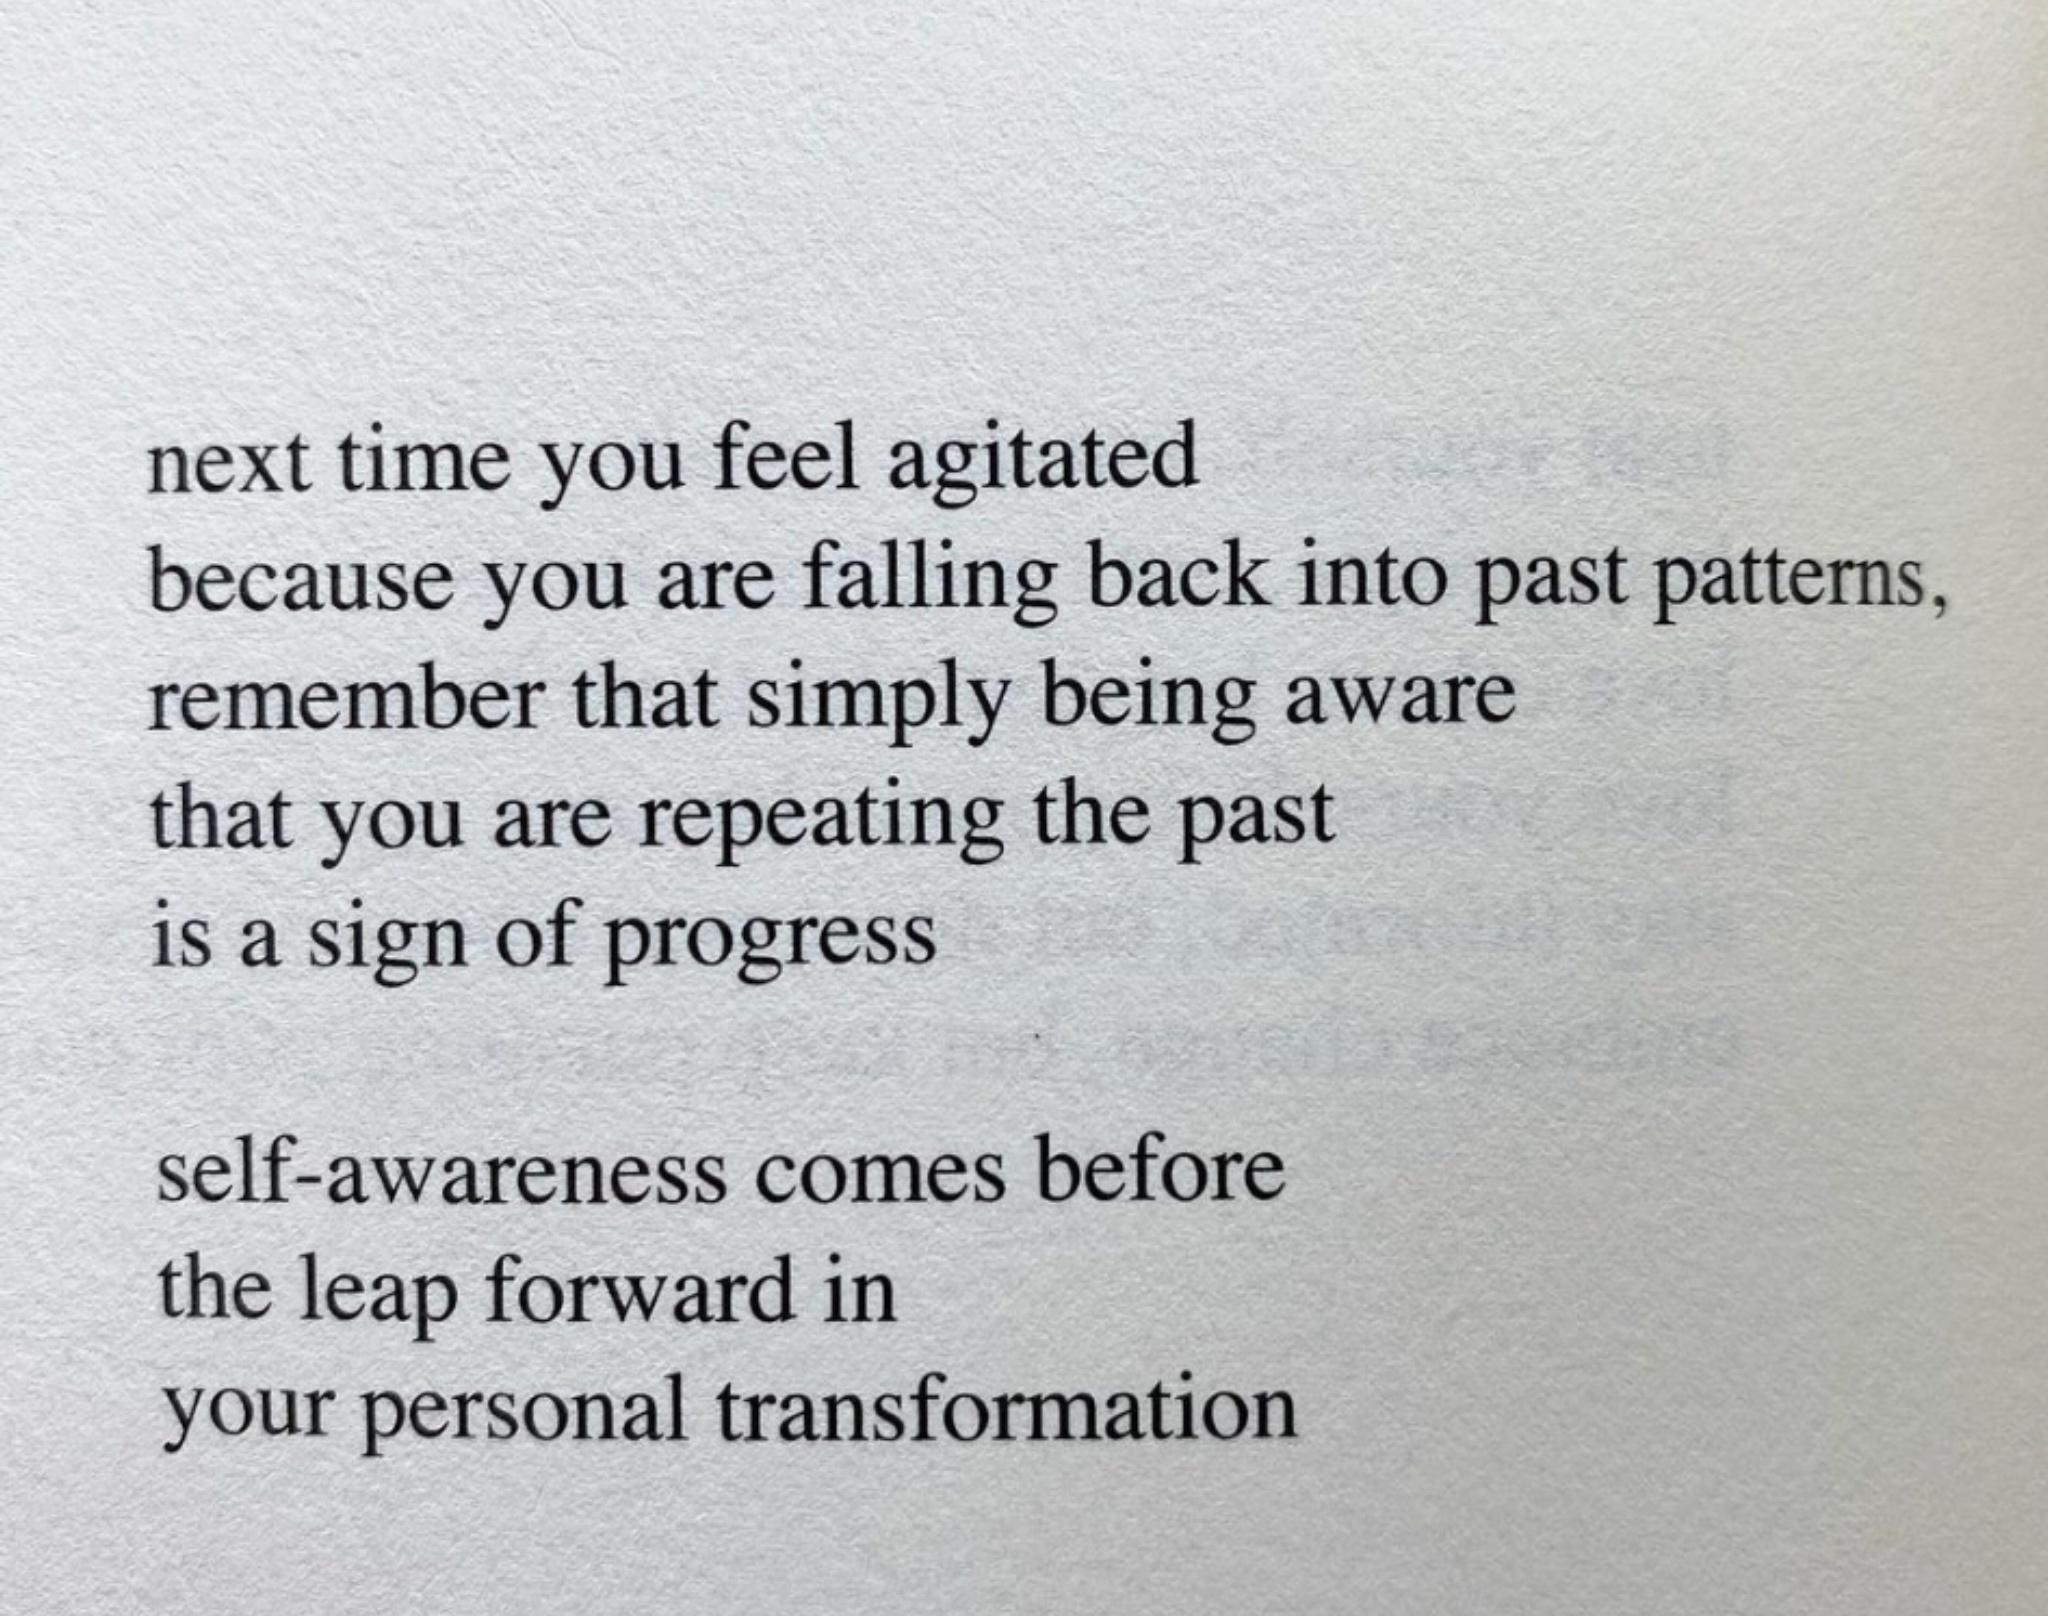 [Image] realizing your past pattern and your mistakes is half the battle